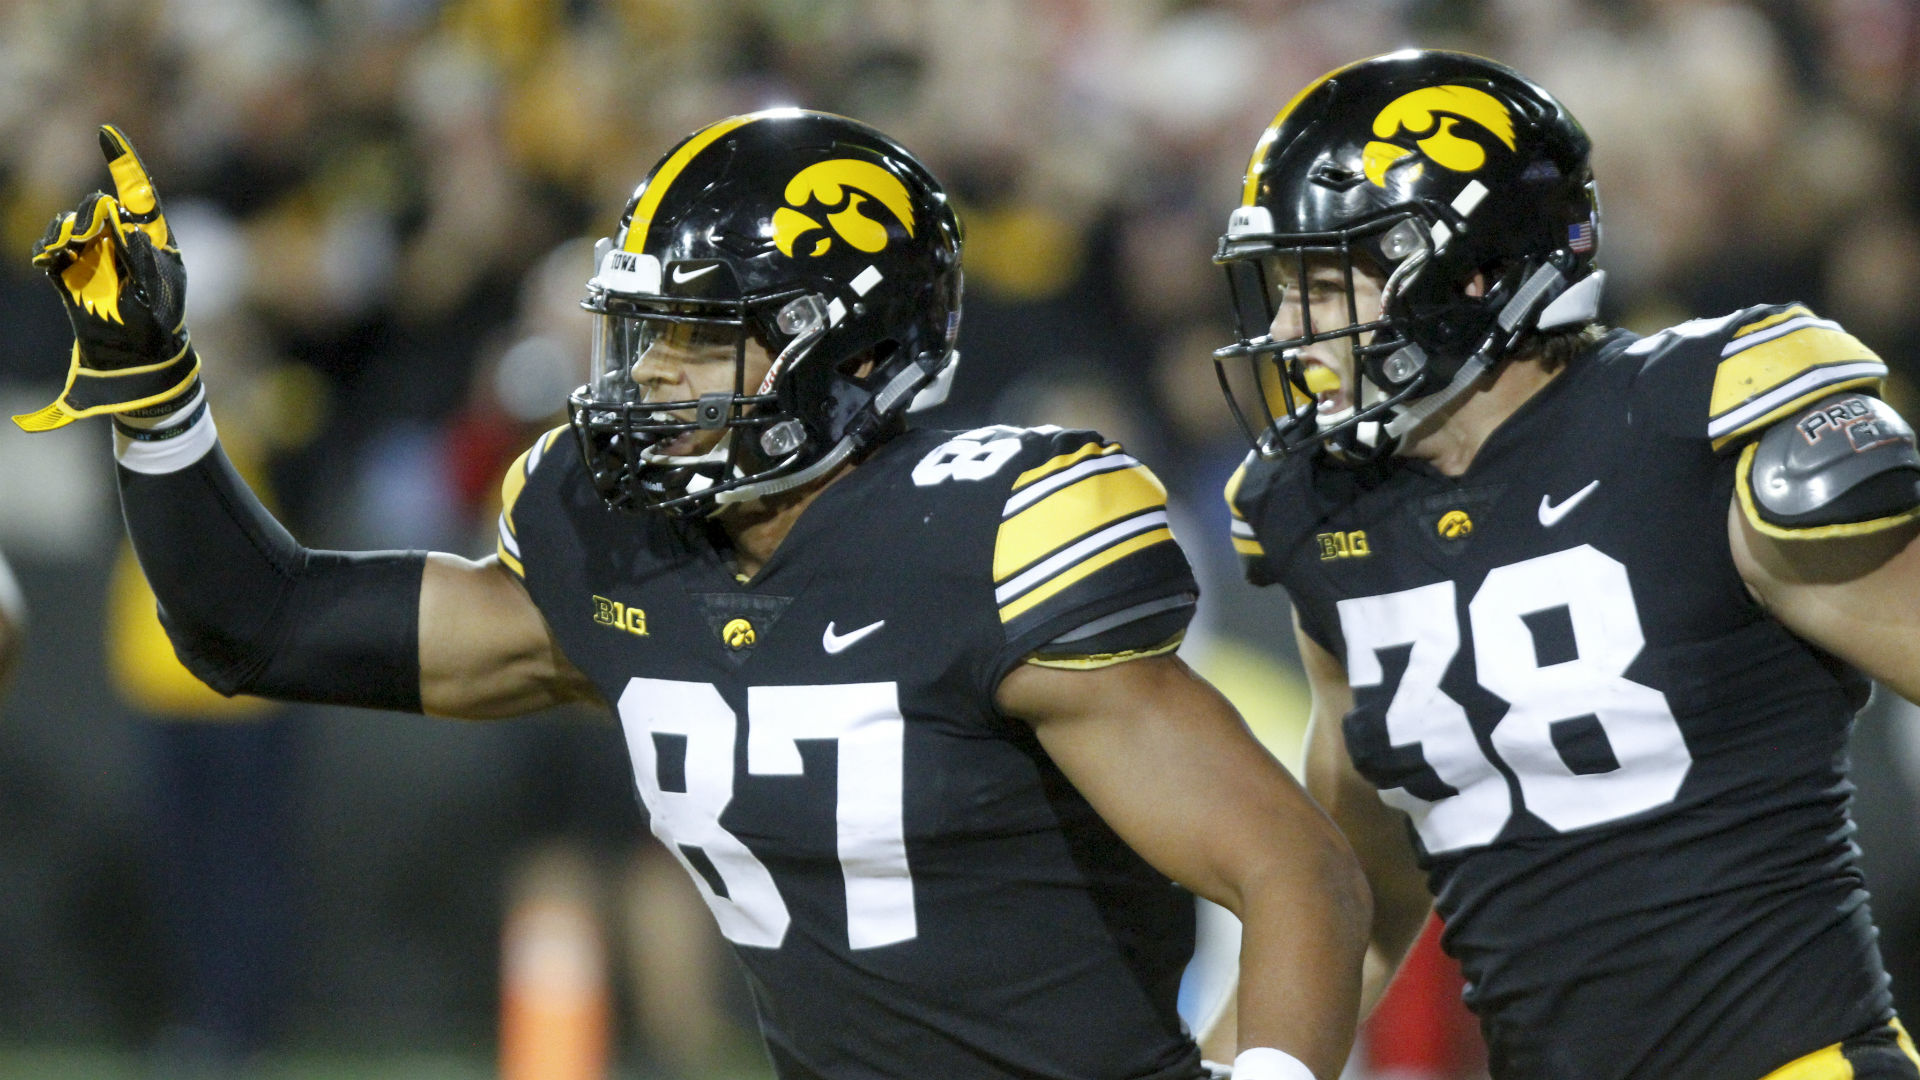 NFL Draft 2019: George Kittle says fellow Iowa tight ends Noah Fant, T.J. Hockenson will have Day 1 impact